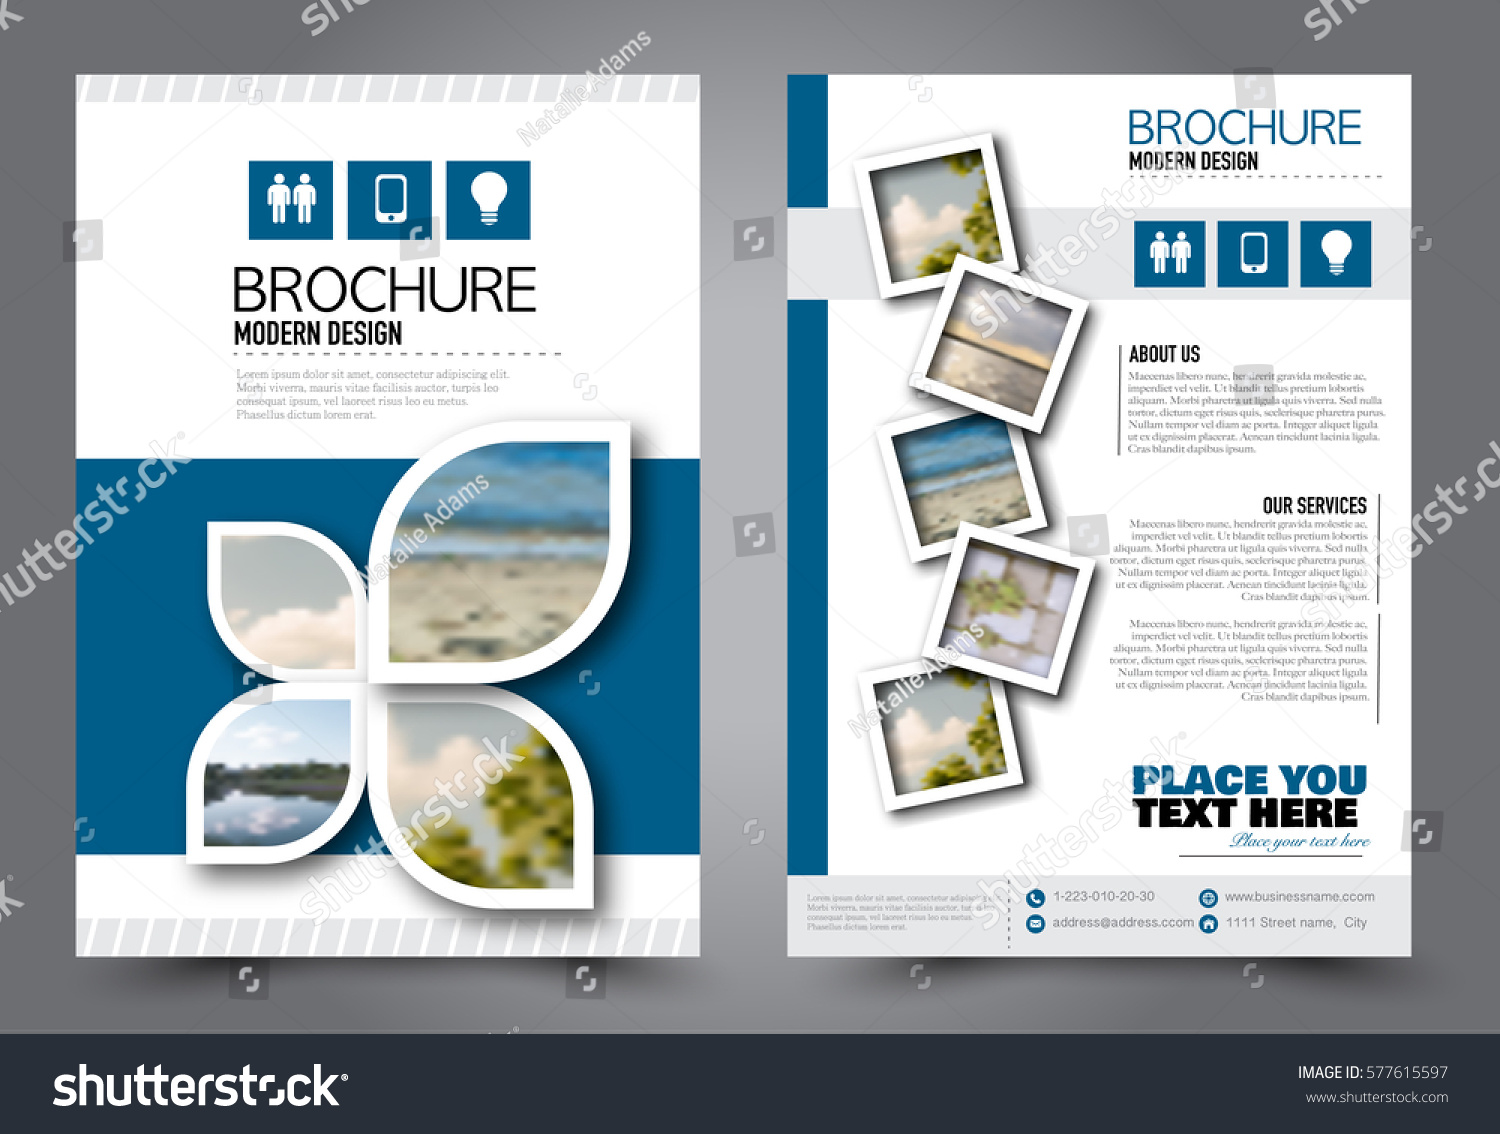 flyer design business brochure template annual stock vector 577615597 shutterstock. Black Bedroom Furniture Sets. Home Design Ideas